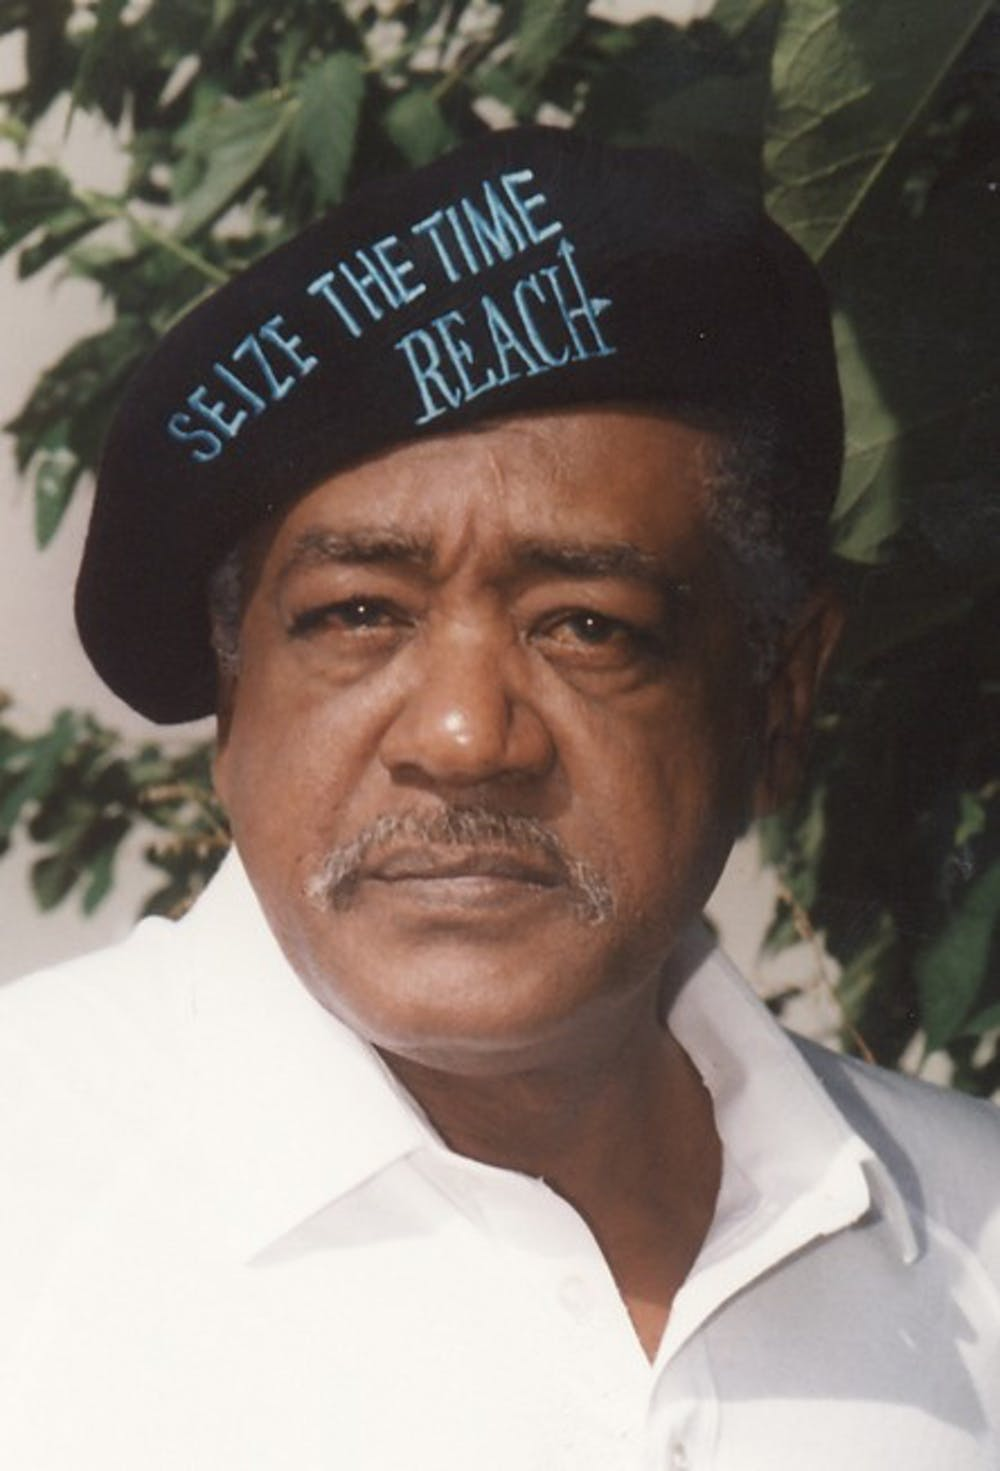 Black Panther Party co-founder Bobby Seale to speak at AU next week